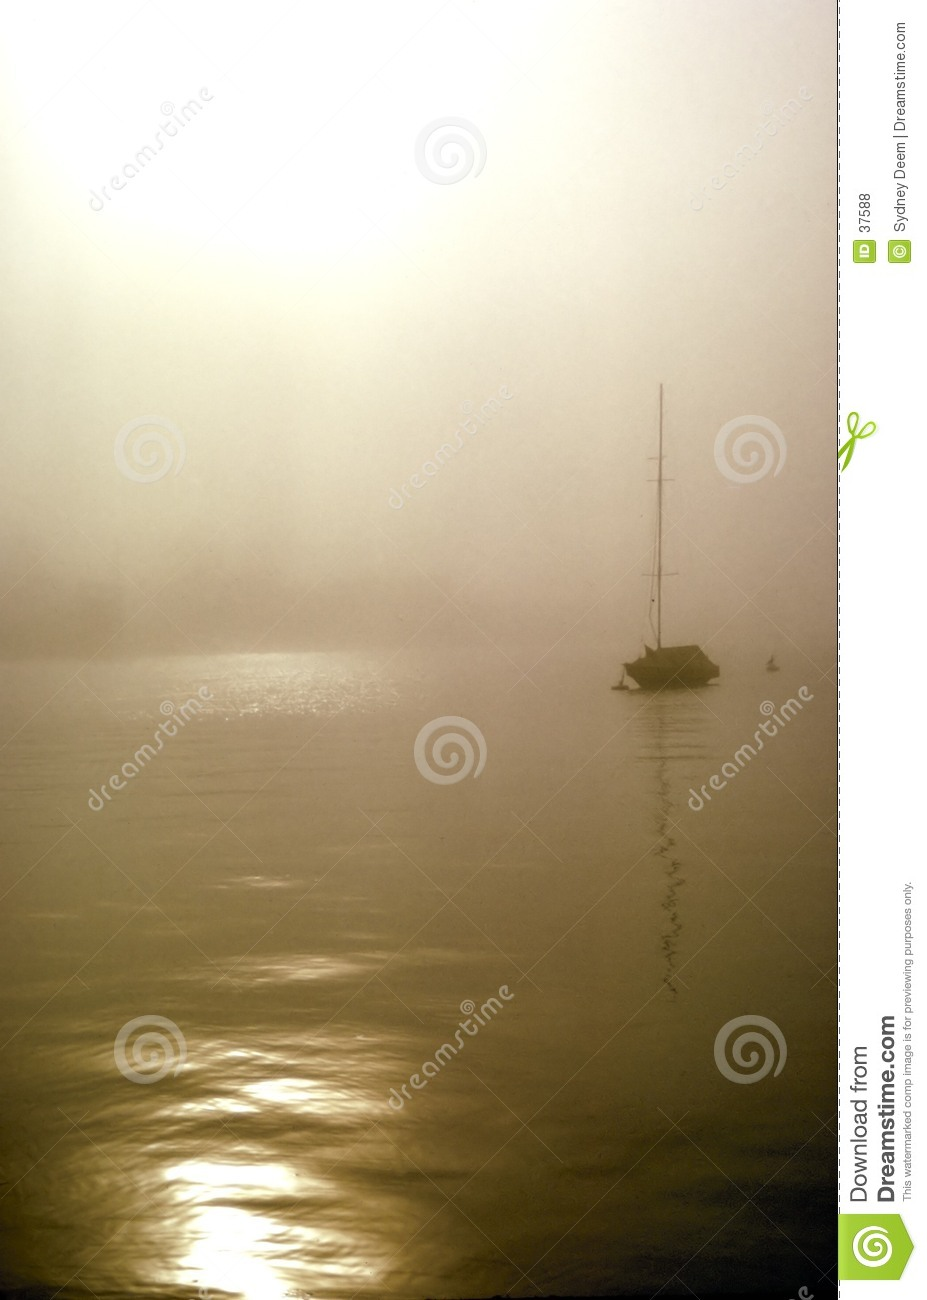 Sail boat in the fog